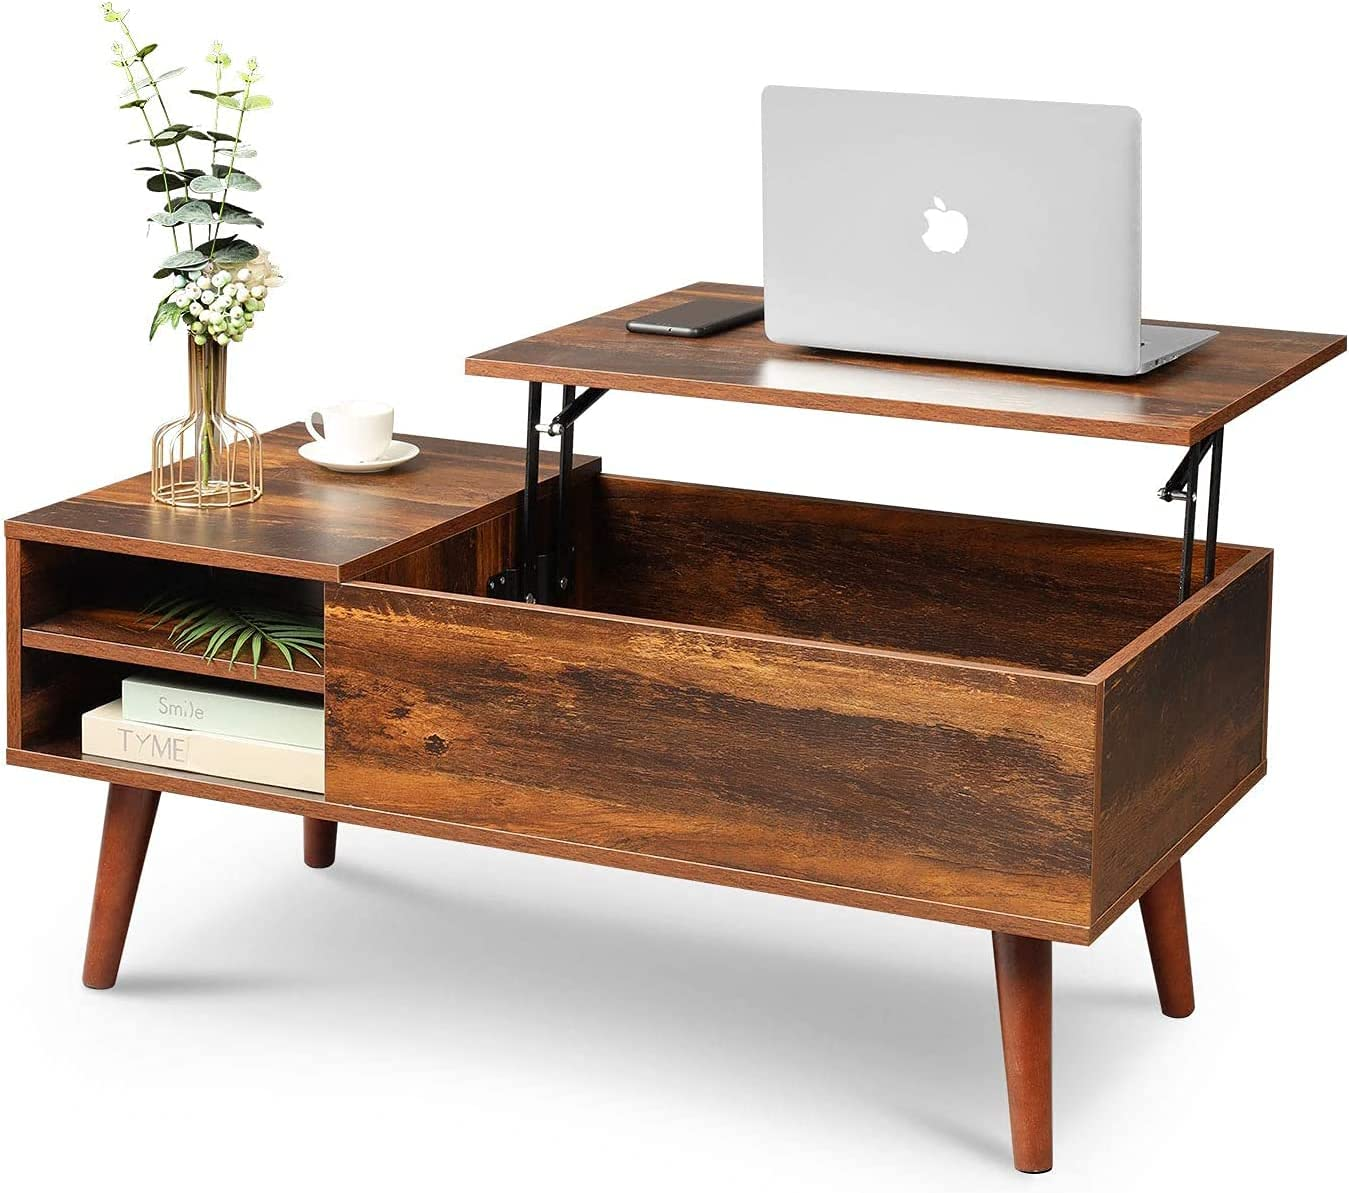 WLIVE Wood Lift Top Coffee Table with Hidden Compartment and Adjustable Storage Shelf, Lift Tabletop Dining Table for Home Living Room, Office, Rustic Oak